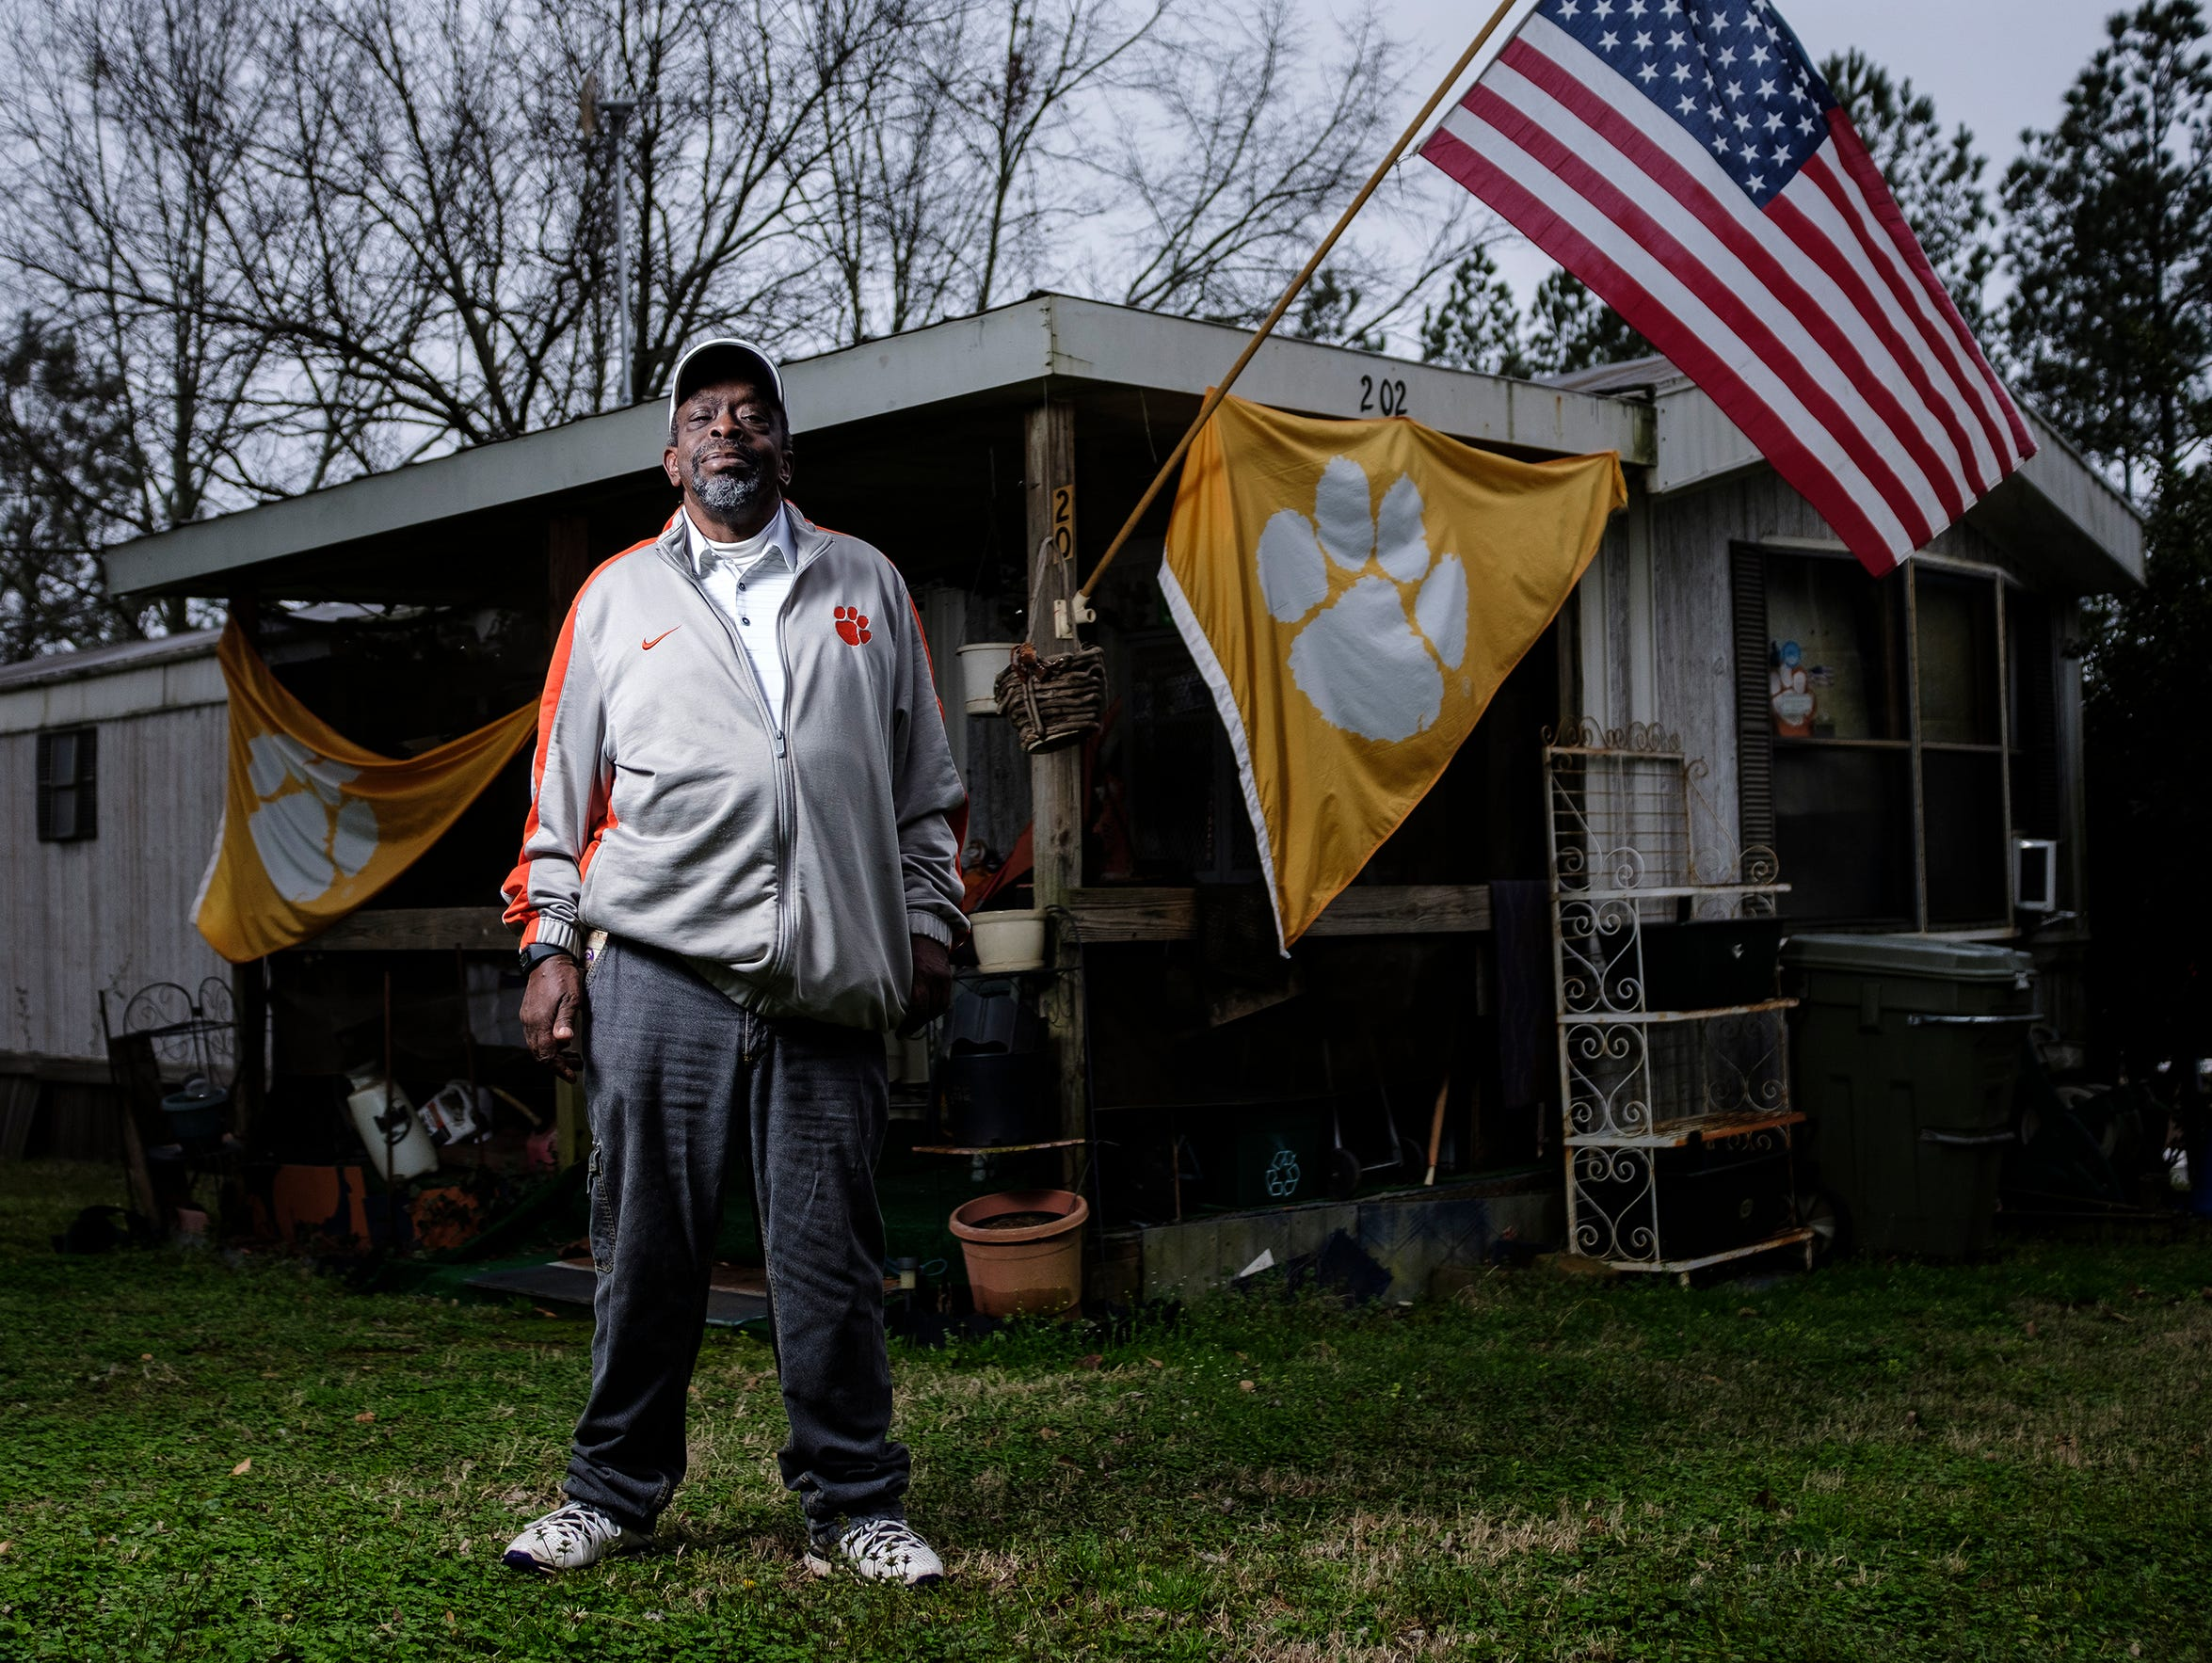 Danny L. Cannon, 63, stands in front of his home in the Calhoun neighborhood in the city of Clemson. Cannon is a diehard Clemson football fan, but he and his neighbors have been feeling increased pressure from living less than two miles from the university. Cannon says the neighborhood is a fraction of the size it was when he first moved there.